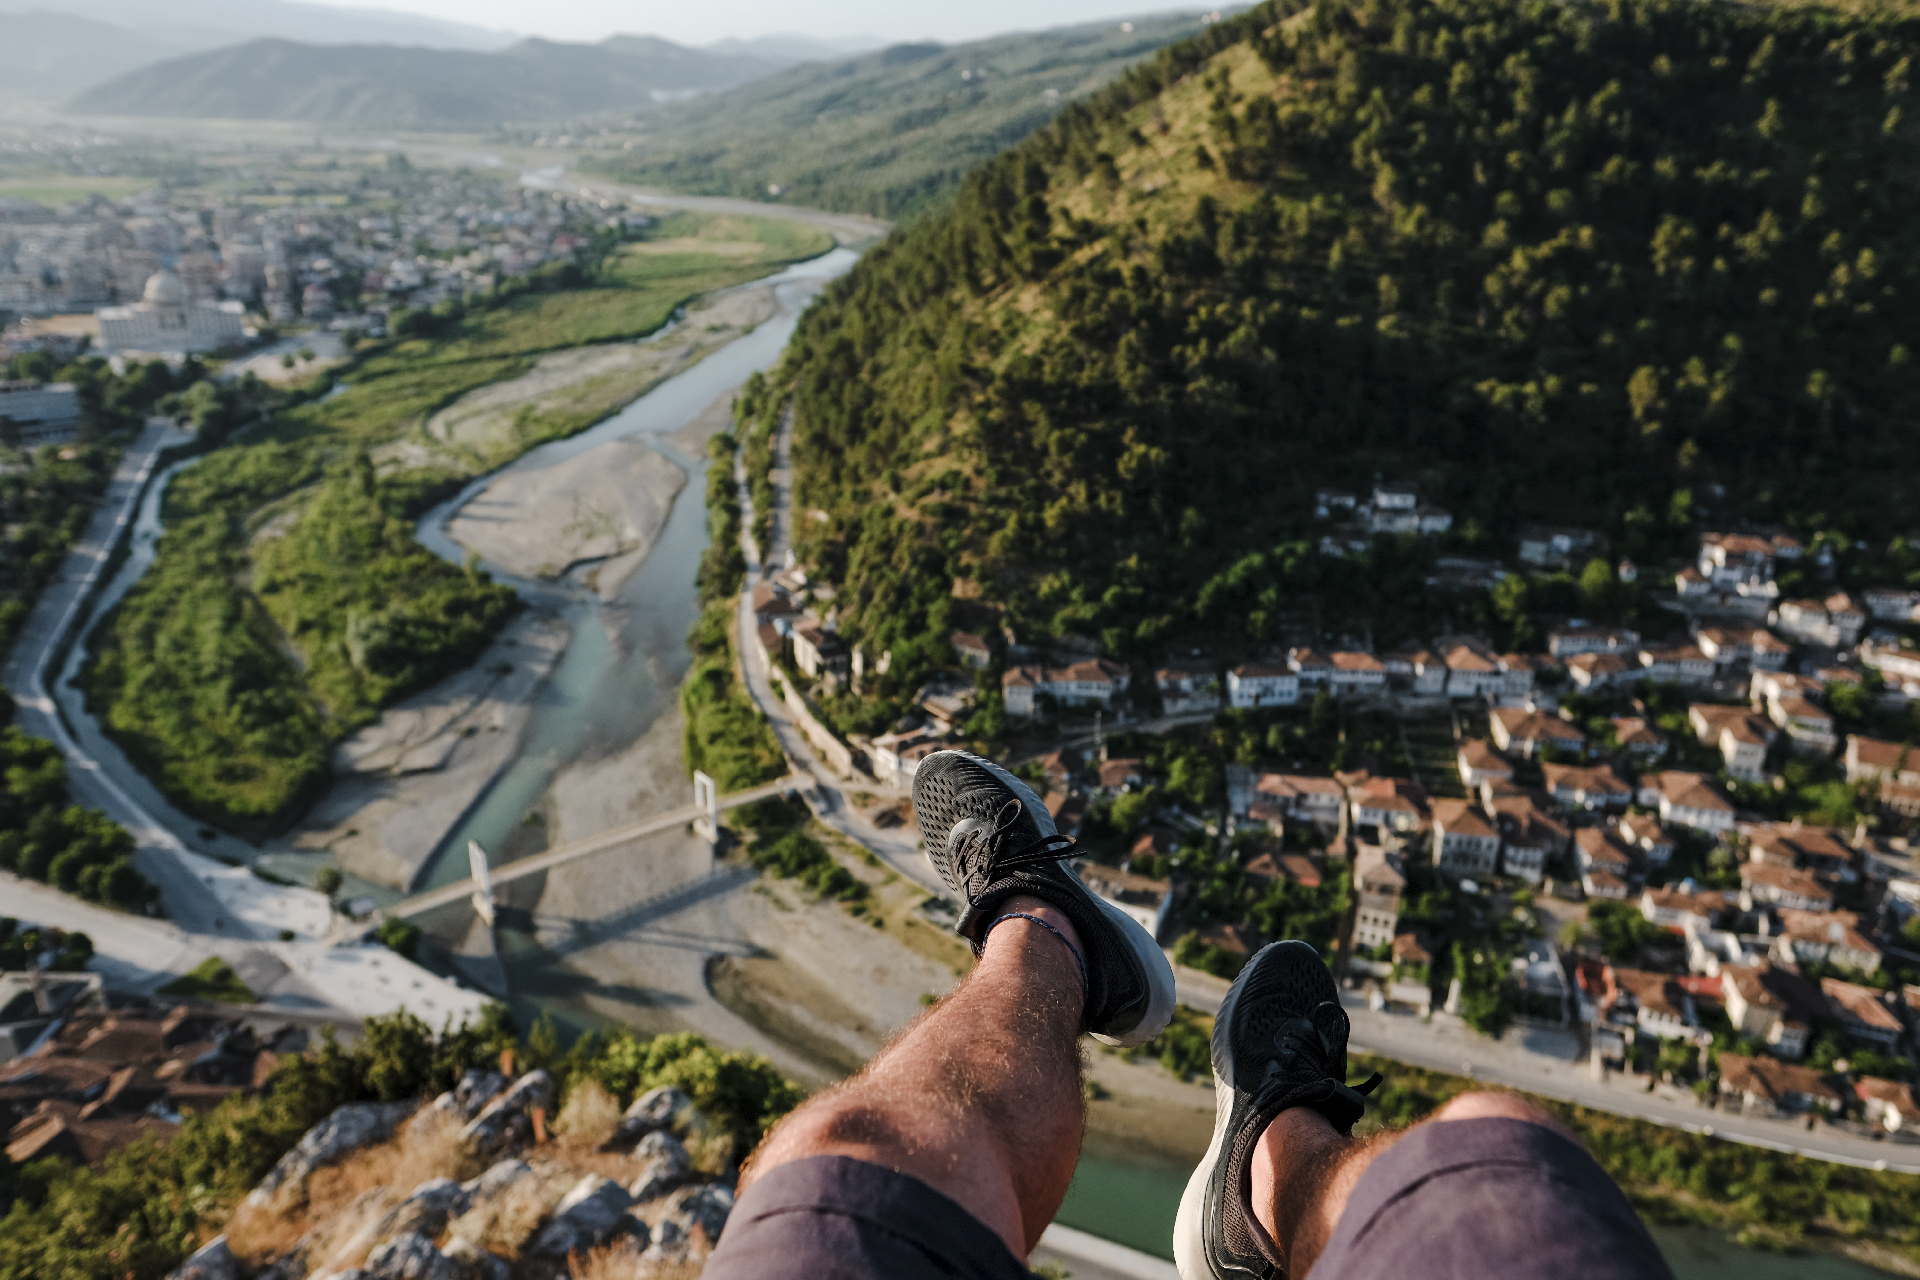 legs looking at the view of the valley and Berat